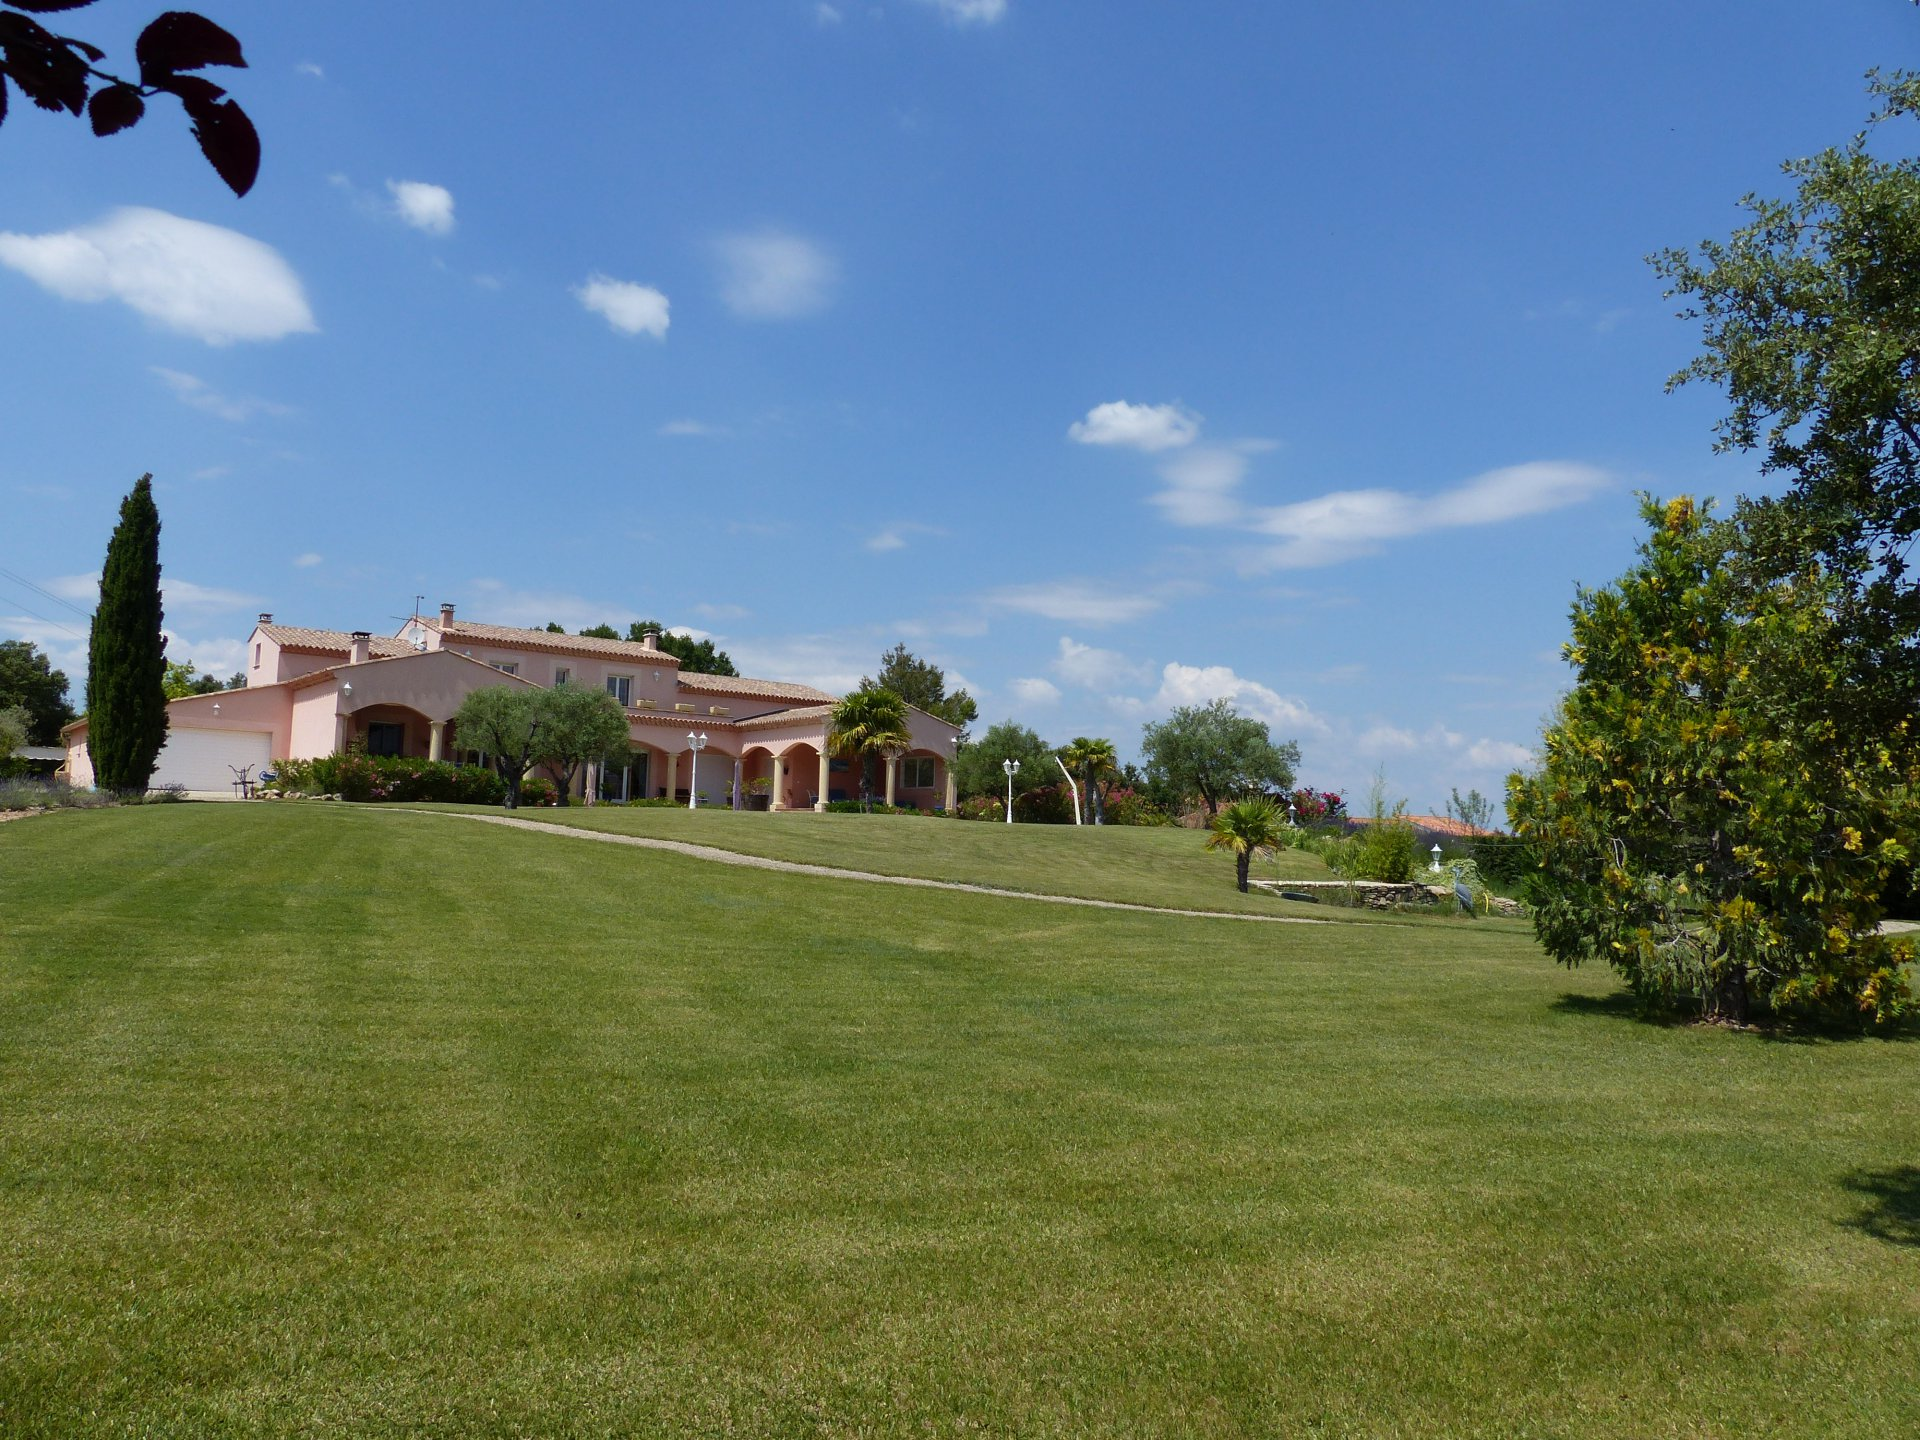 In the heart of thr Provence Verte, 5 bedrooms villa of 395sqm